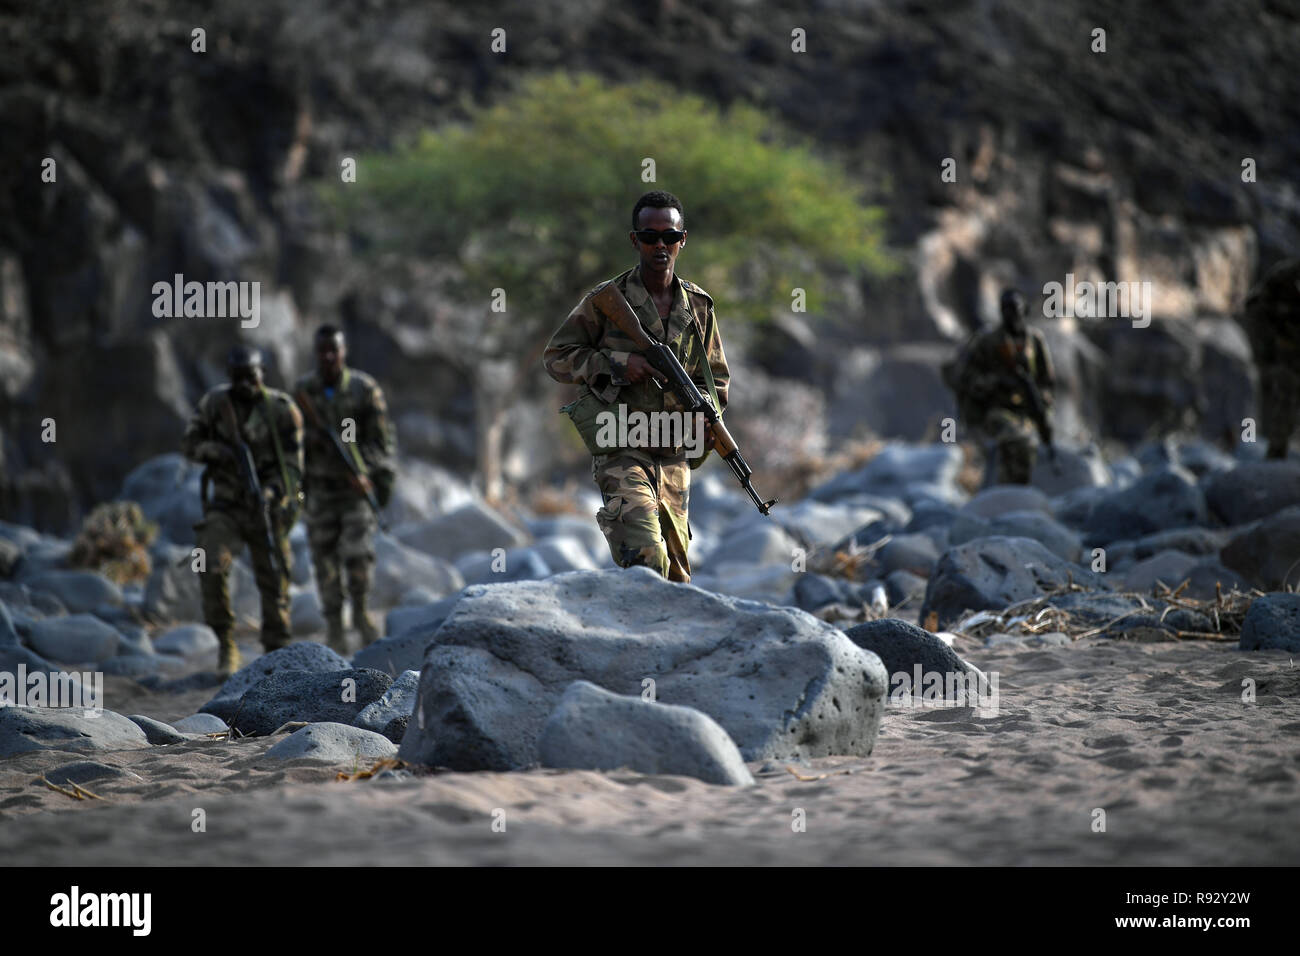 Djiboutian soldiers with the Rapid Intervention Battalion during infantry tactics and procedures training taught by U.S. Forces December 18, 2018 near Djibouti City, Djibouti. - Stock Image